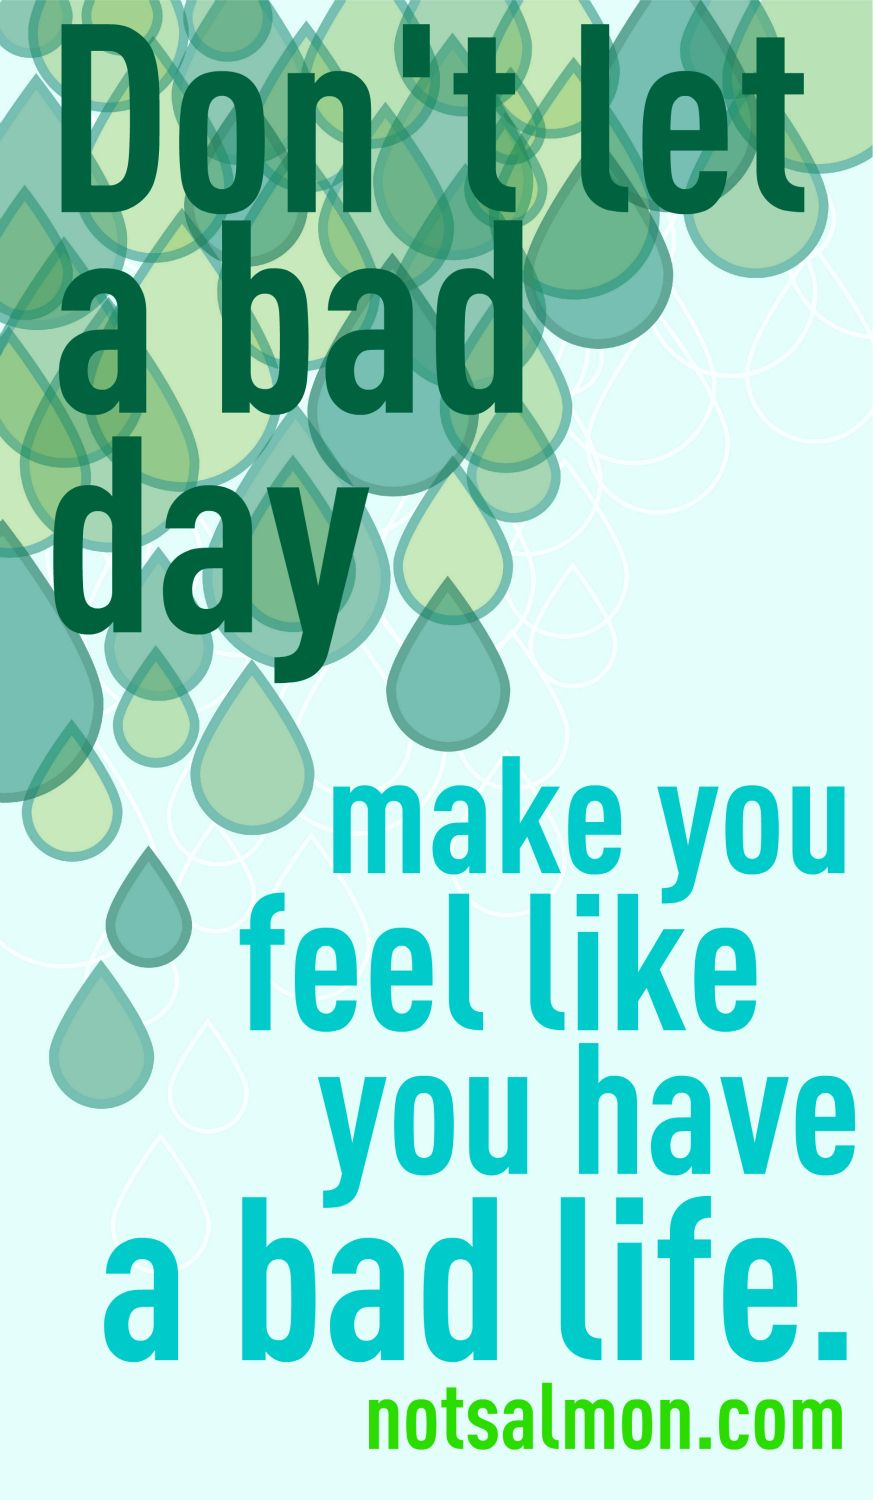 Don't let a bad day